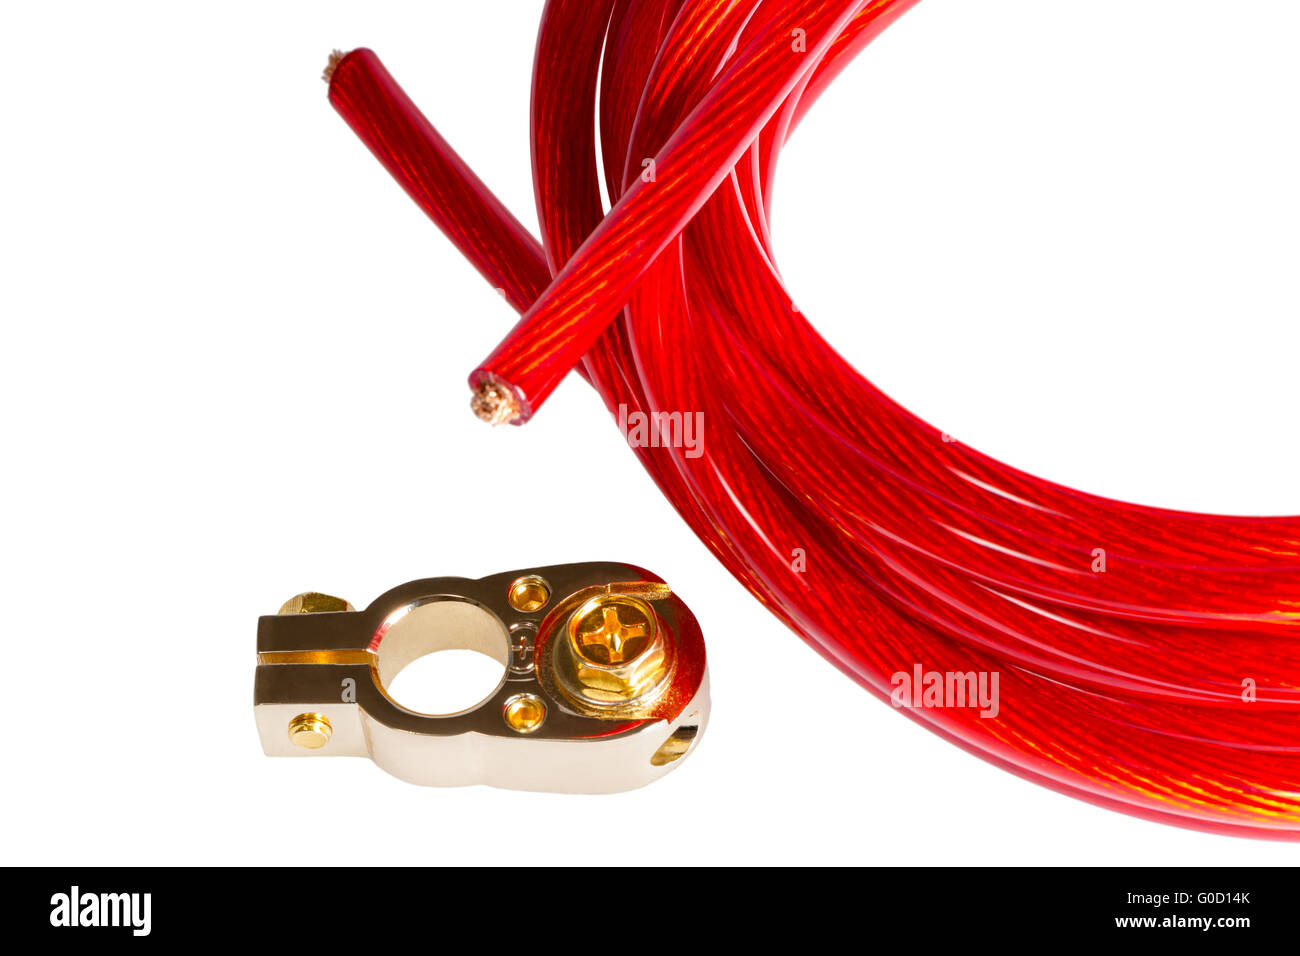 Electricity Power Cable And Positive Contact Terminal Car Battery